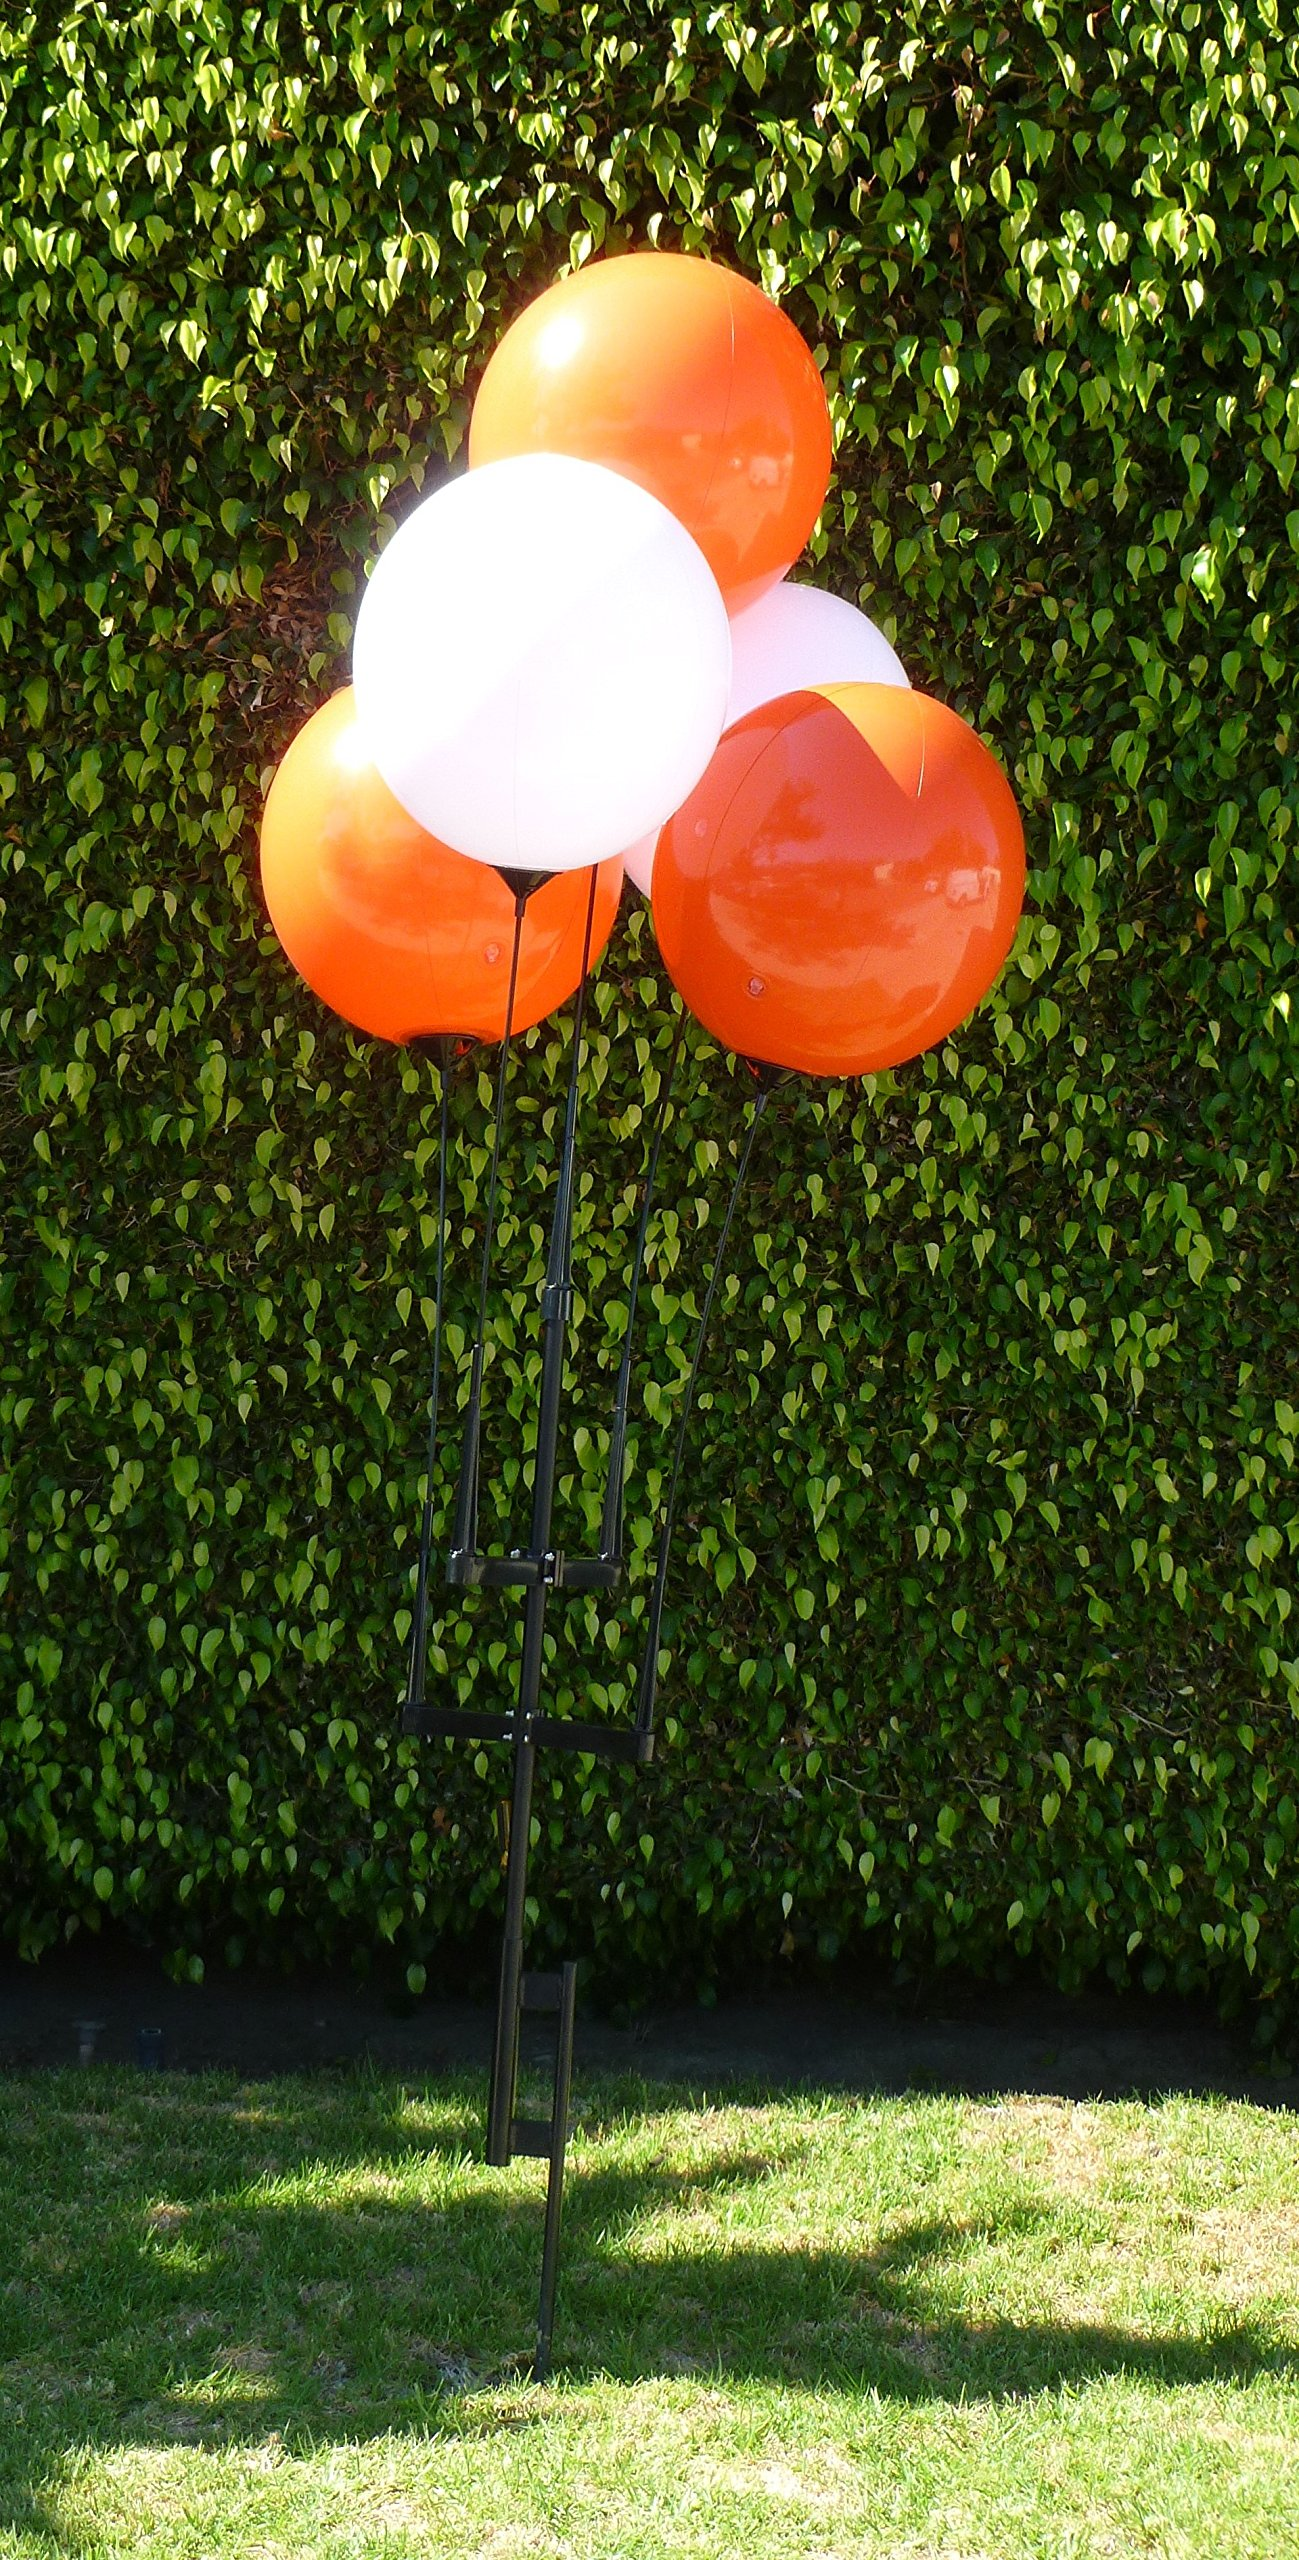 Reusable Balloon Cluster Kit with Ground Spike, 5 Piece, Red and White